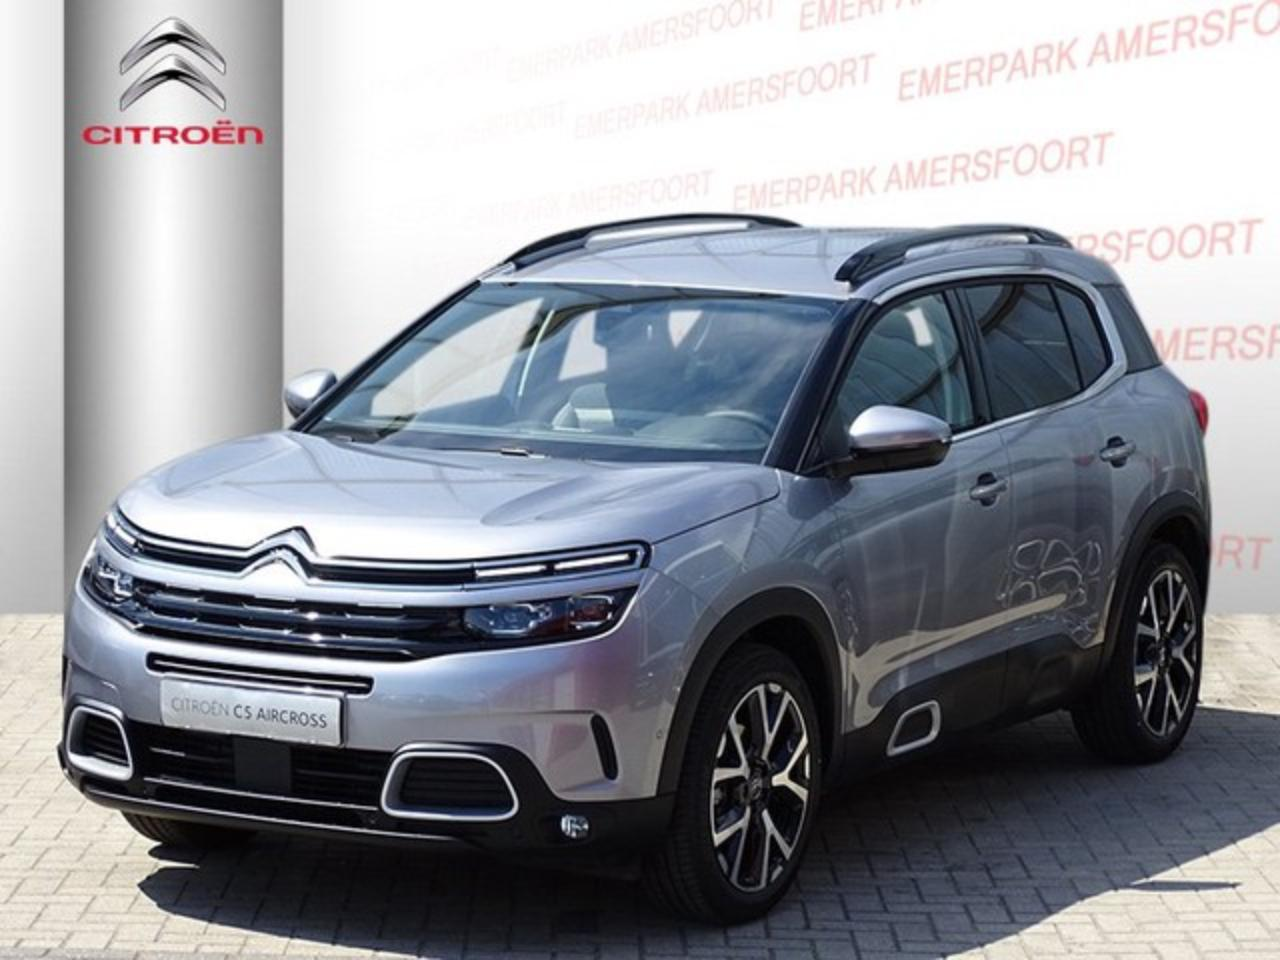 Citroën C5 AIRCROSS Business Plus 1.2 PureTech 130pk | Full-LED koplam